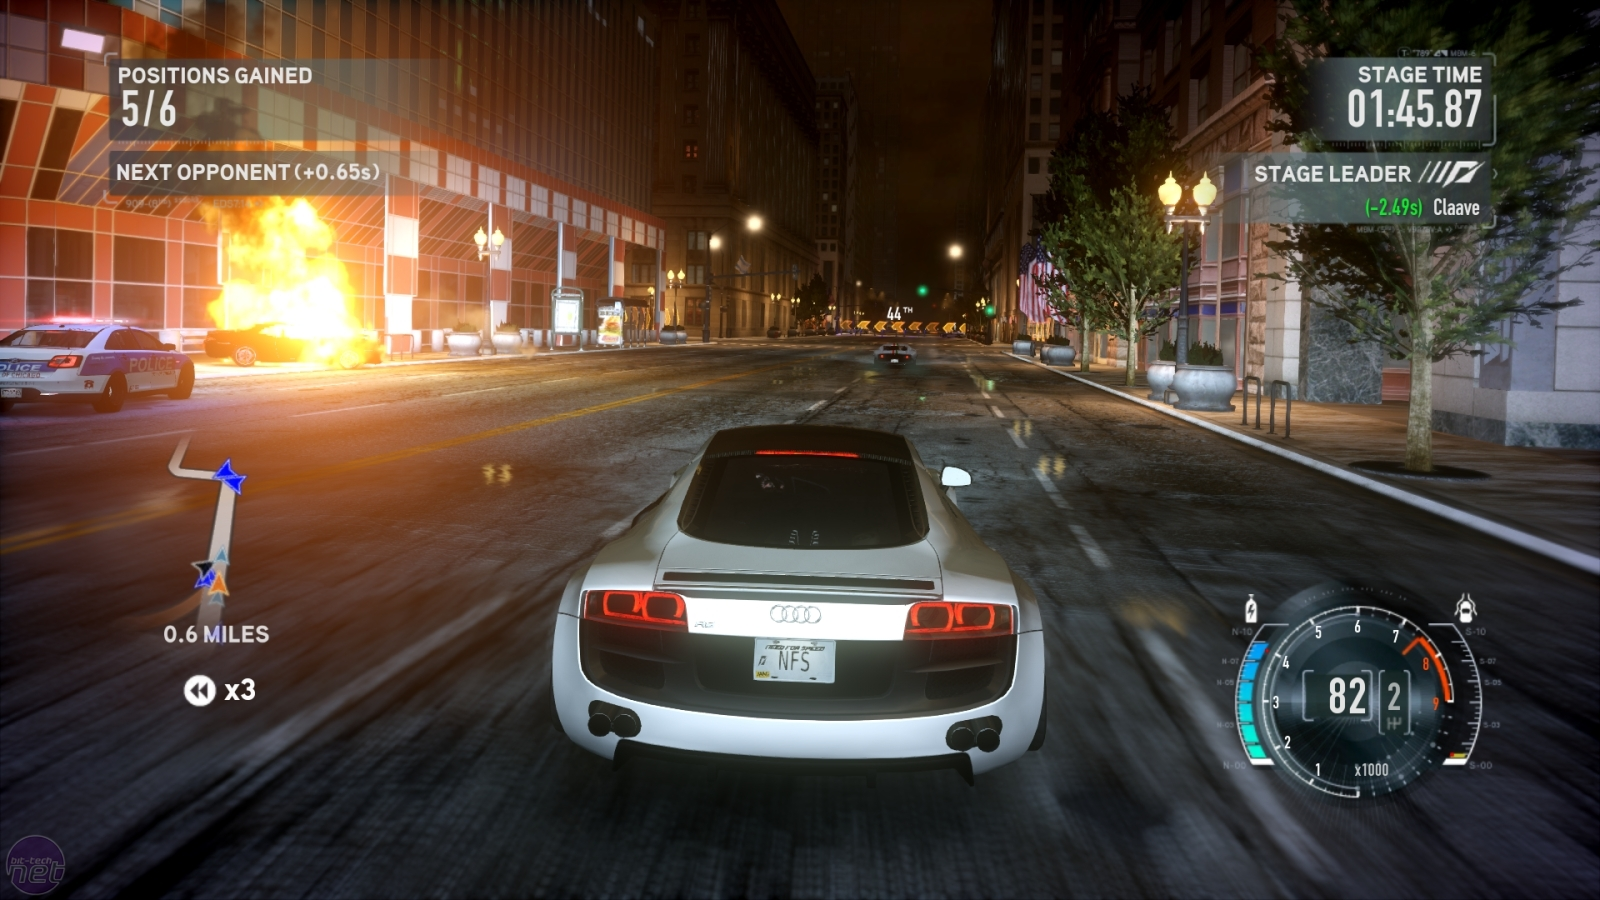 Need for speed game release date in Perth